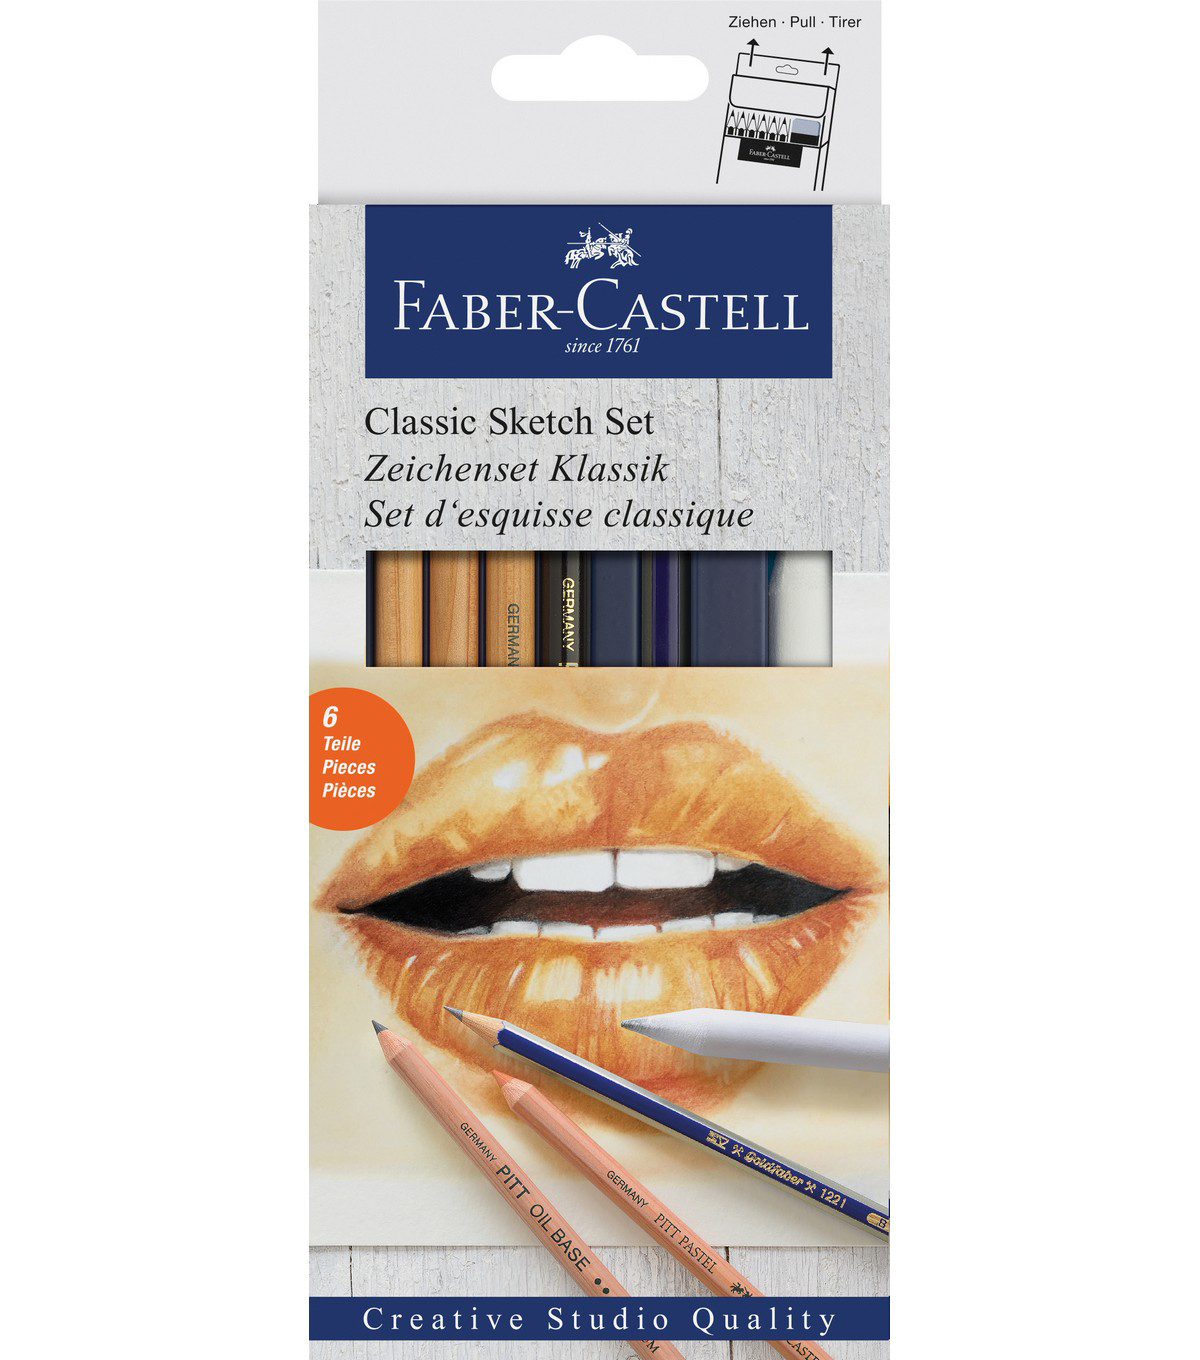 Faber-Castell Classic Sketch Set